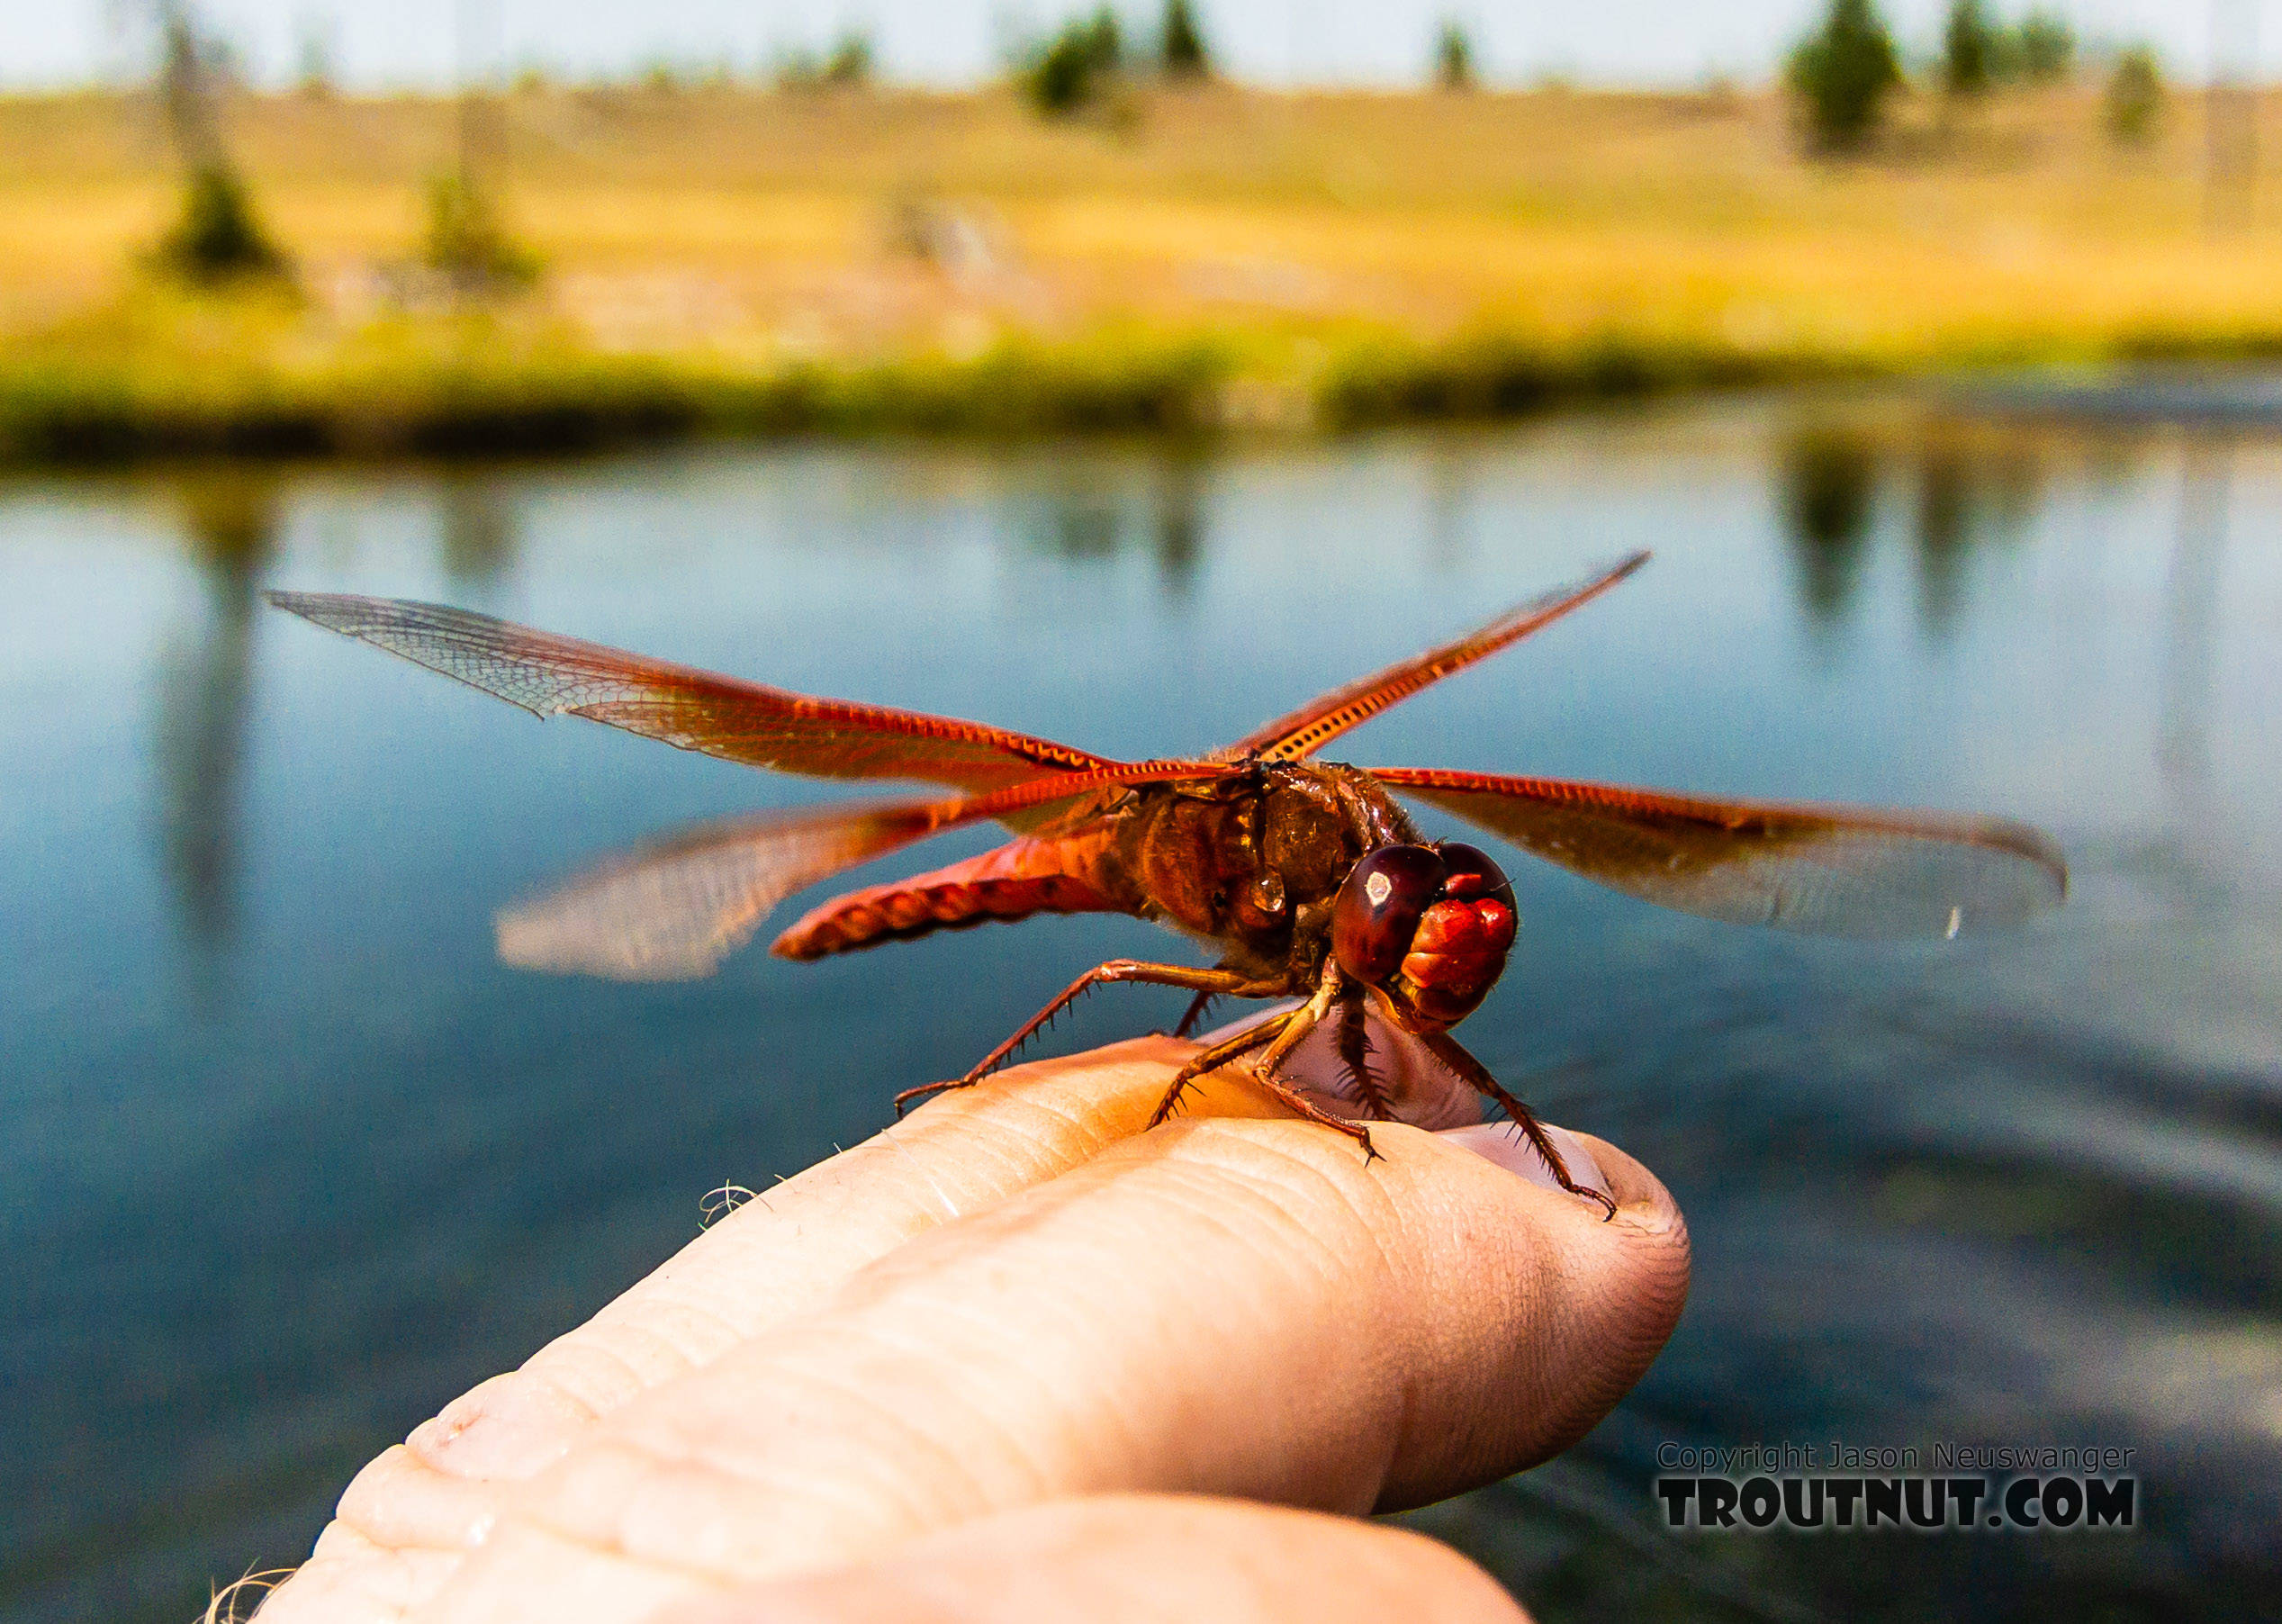 This Flame Skimmer dragonfly is found only in the warm southwest US and in Yellowstone, where geothermal features provide the warm water its nymphs need.  Libellulidae Dragonfly Adult from the Henry's Fork of the Snake River in Idaho